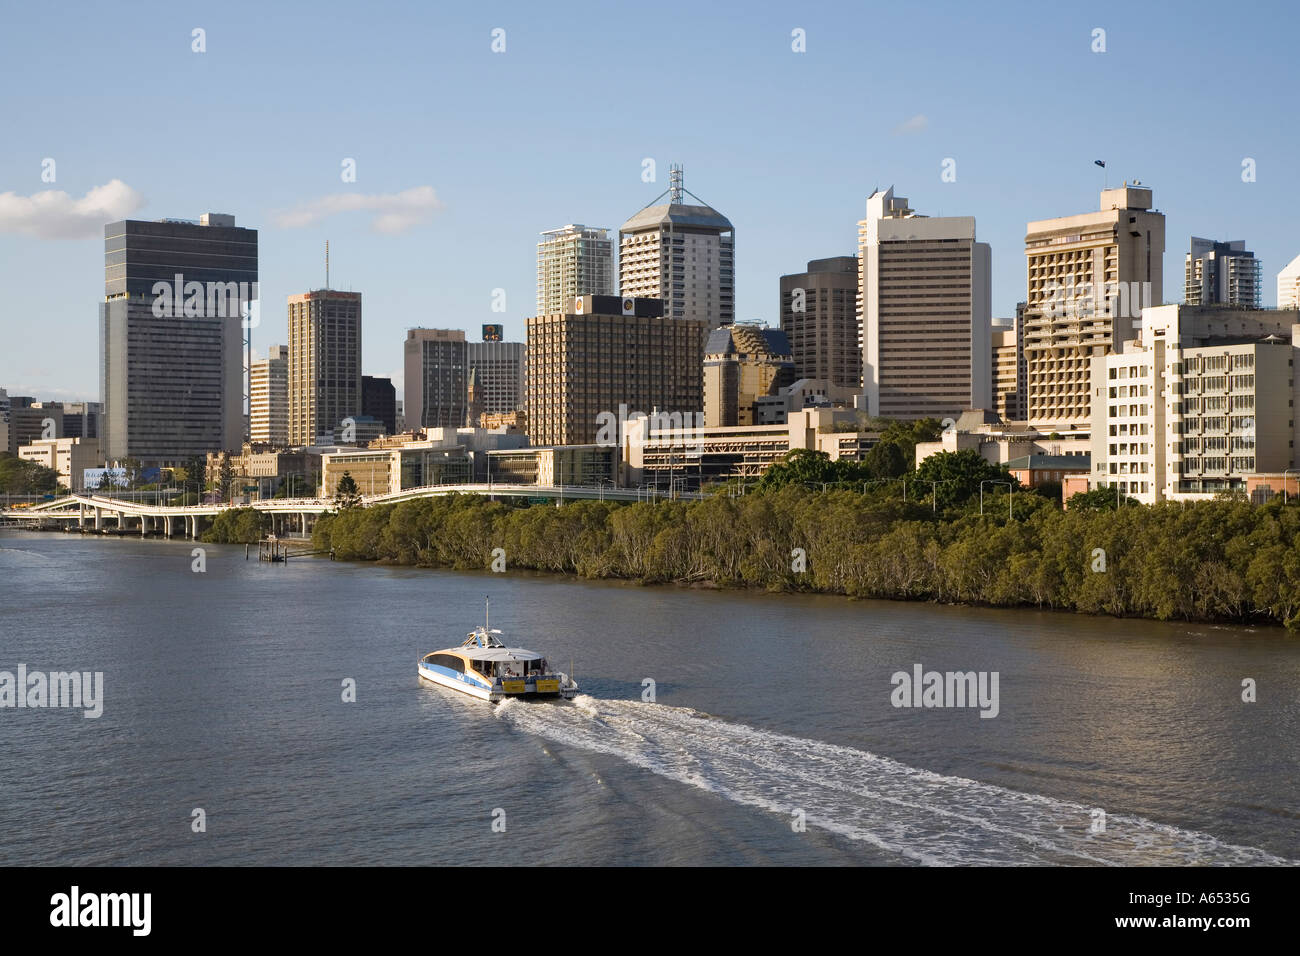 View along the Brisbane River toward the city's central business district - Stock Image